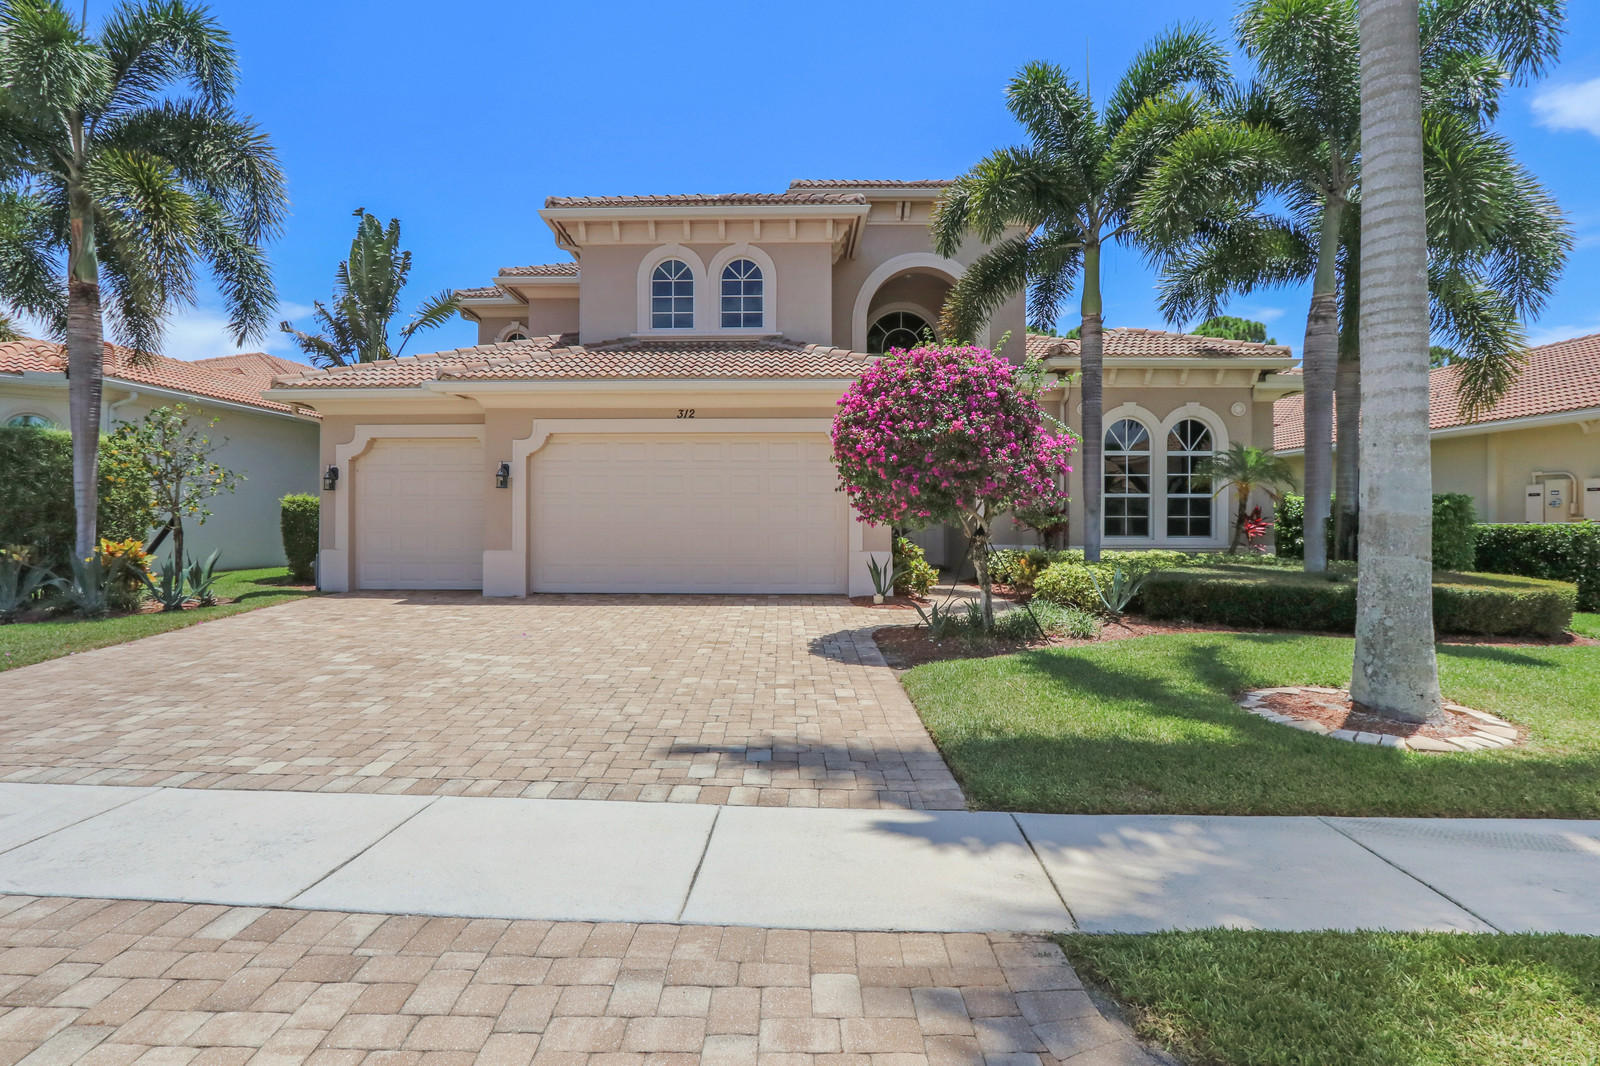 312 Charroux Drive, Palm Beach Gardens, Florida 33410, 5 Bedrooms Bedrooms, ,5 BathroomsBathrooms,A,Single family,Charroux,RX-10592944